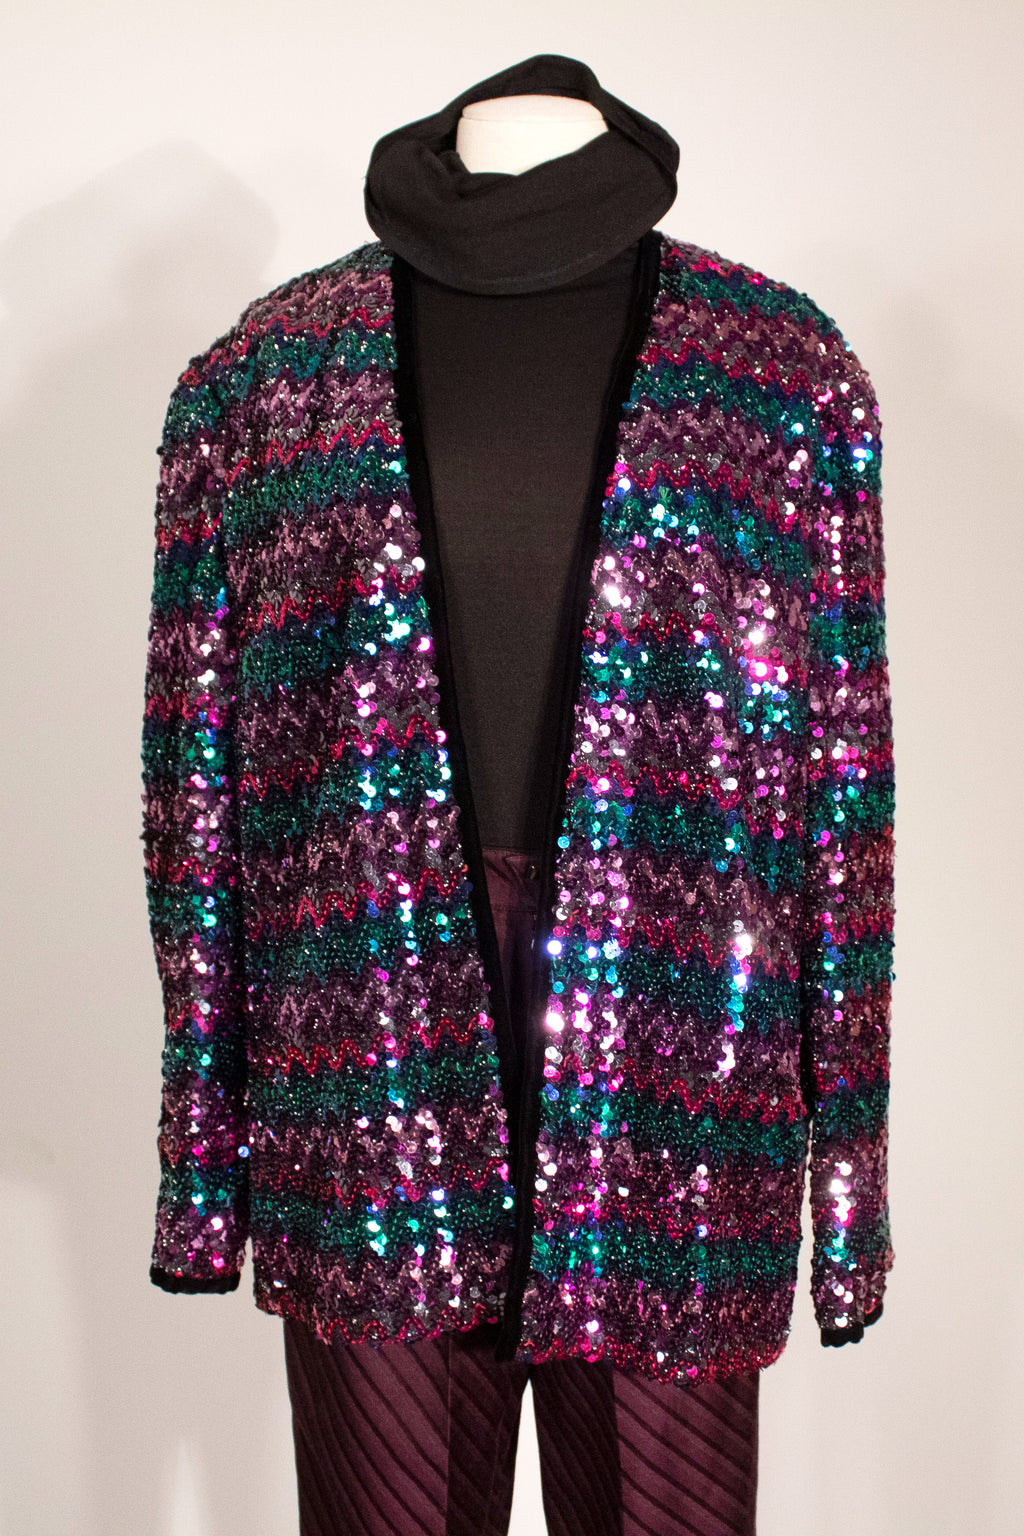 Unmarked vintage multi color sequin jacket